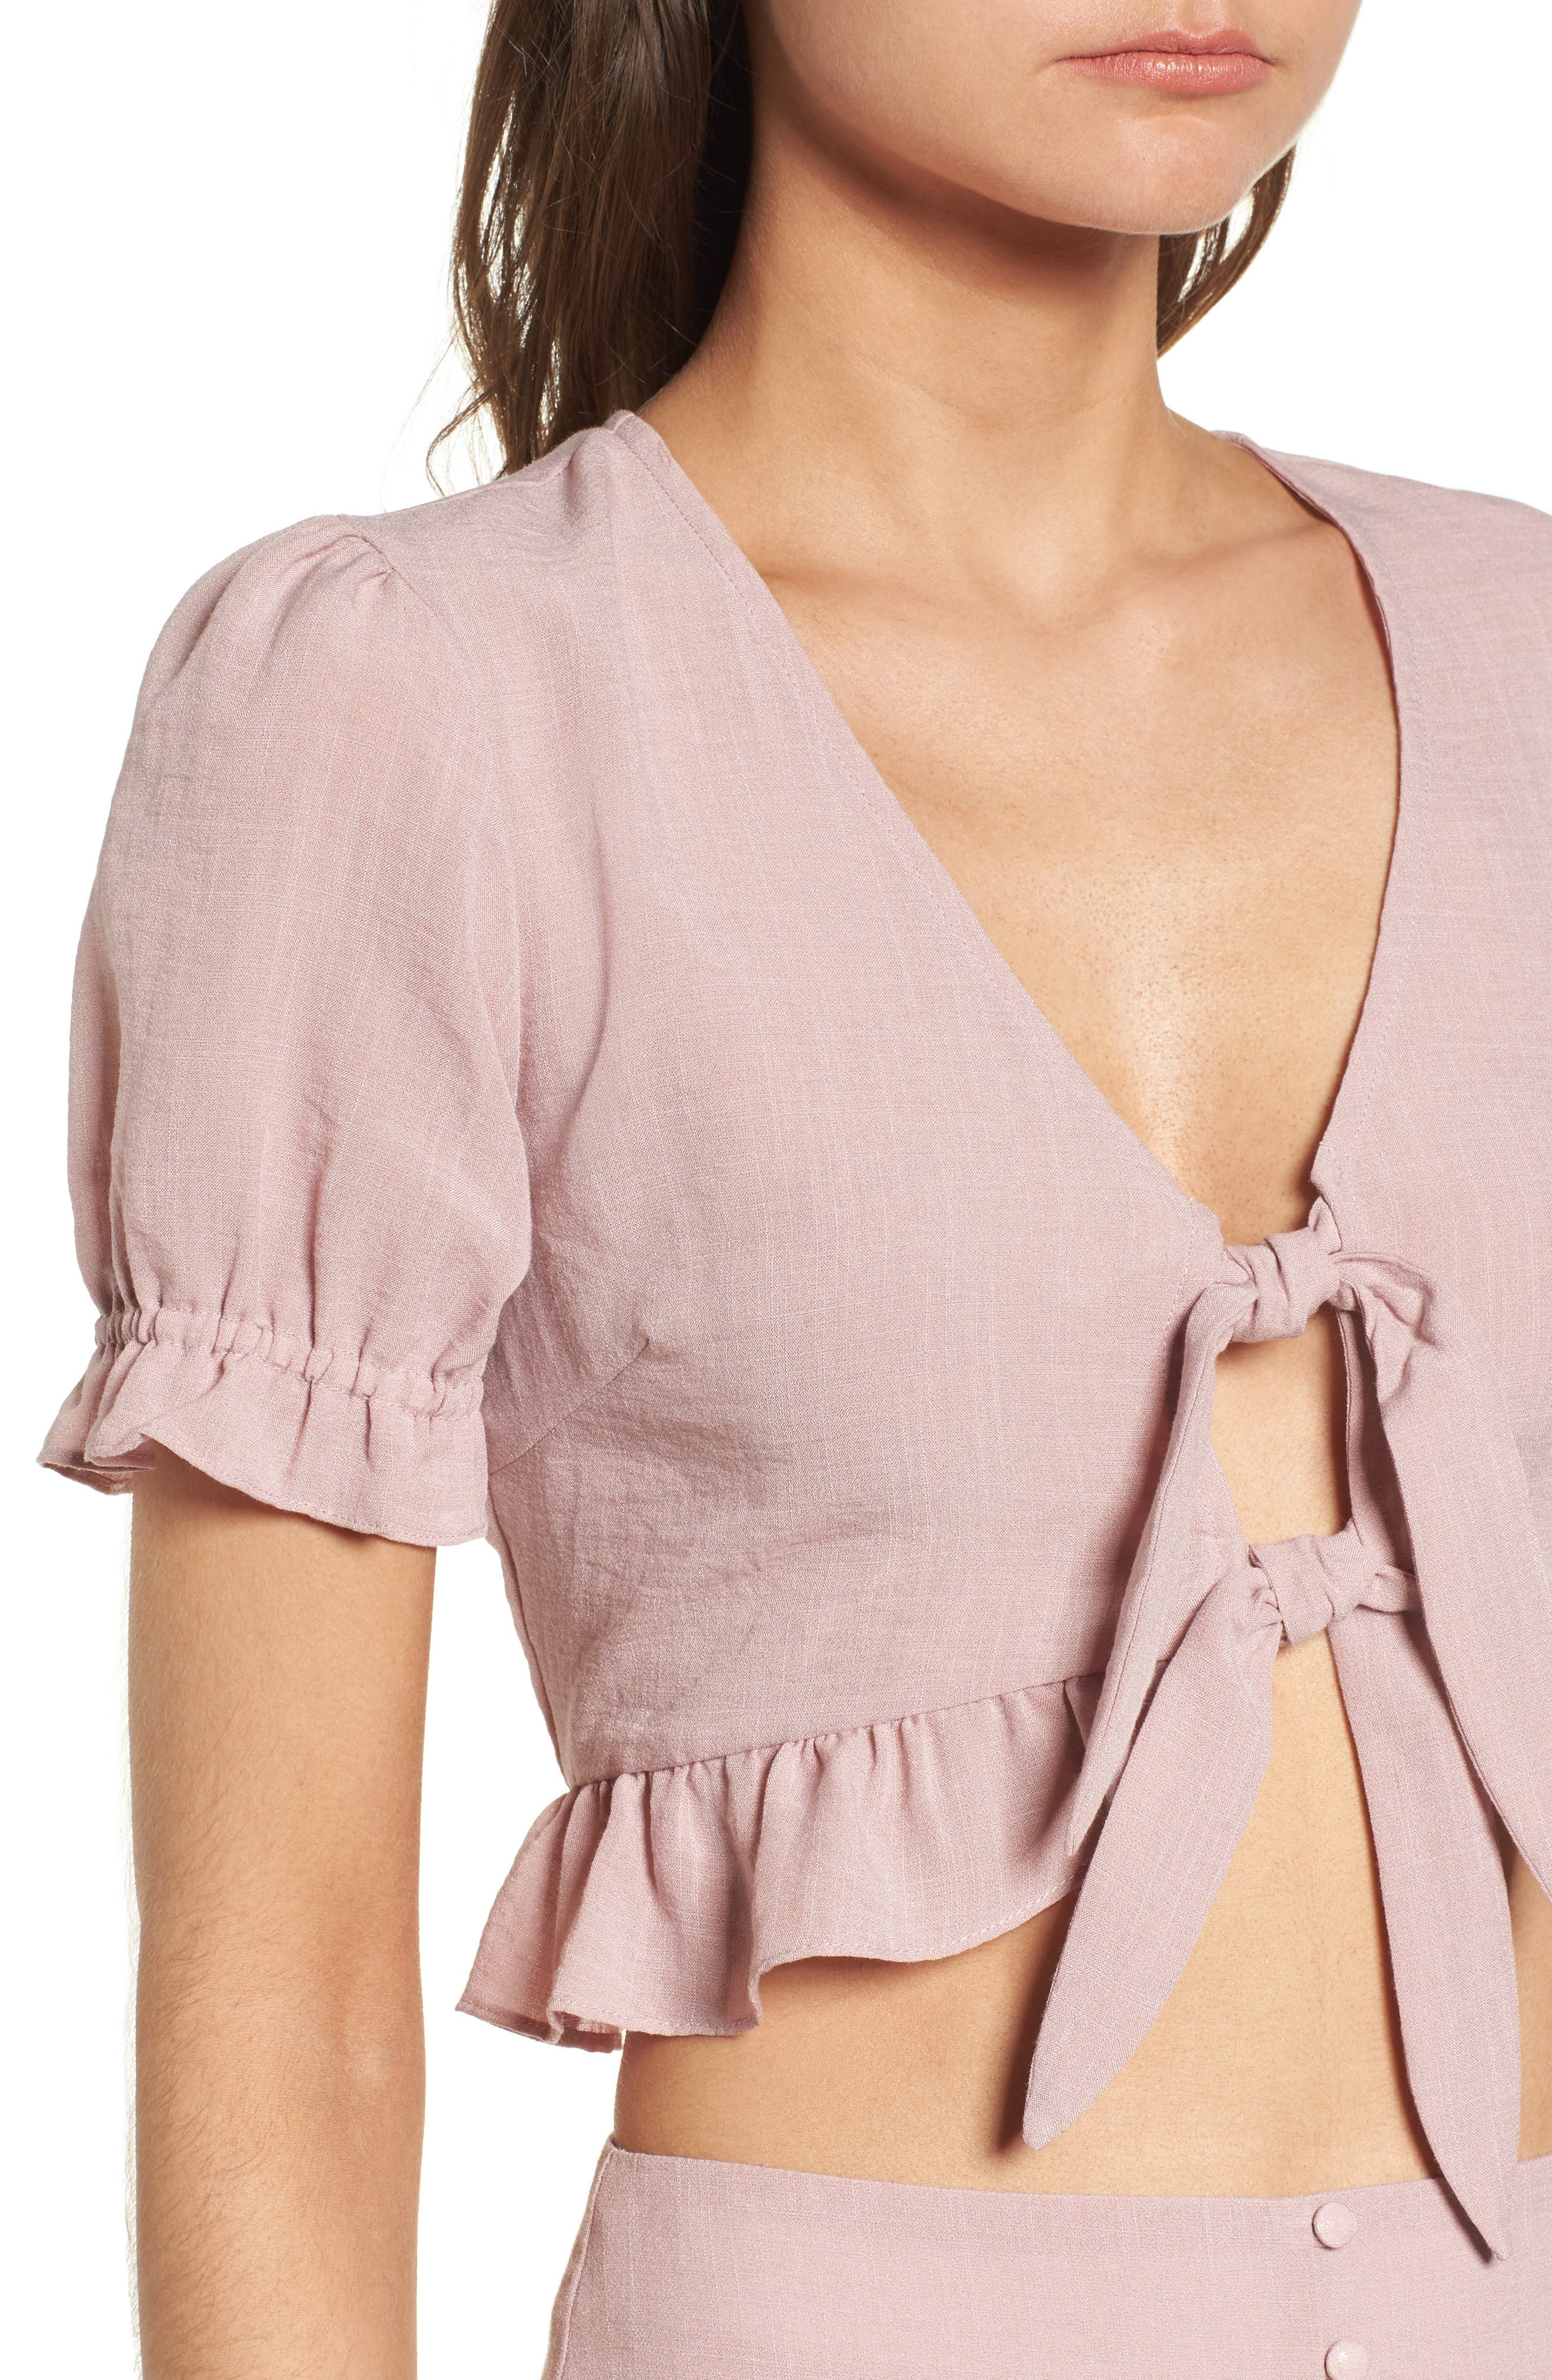 LOST + WANDER, Peony Ruffle Tie Front Crop Top, Alternate thumbnail 4, color, 681